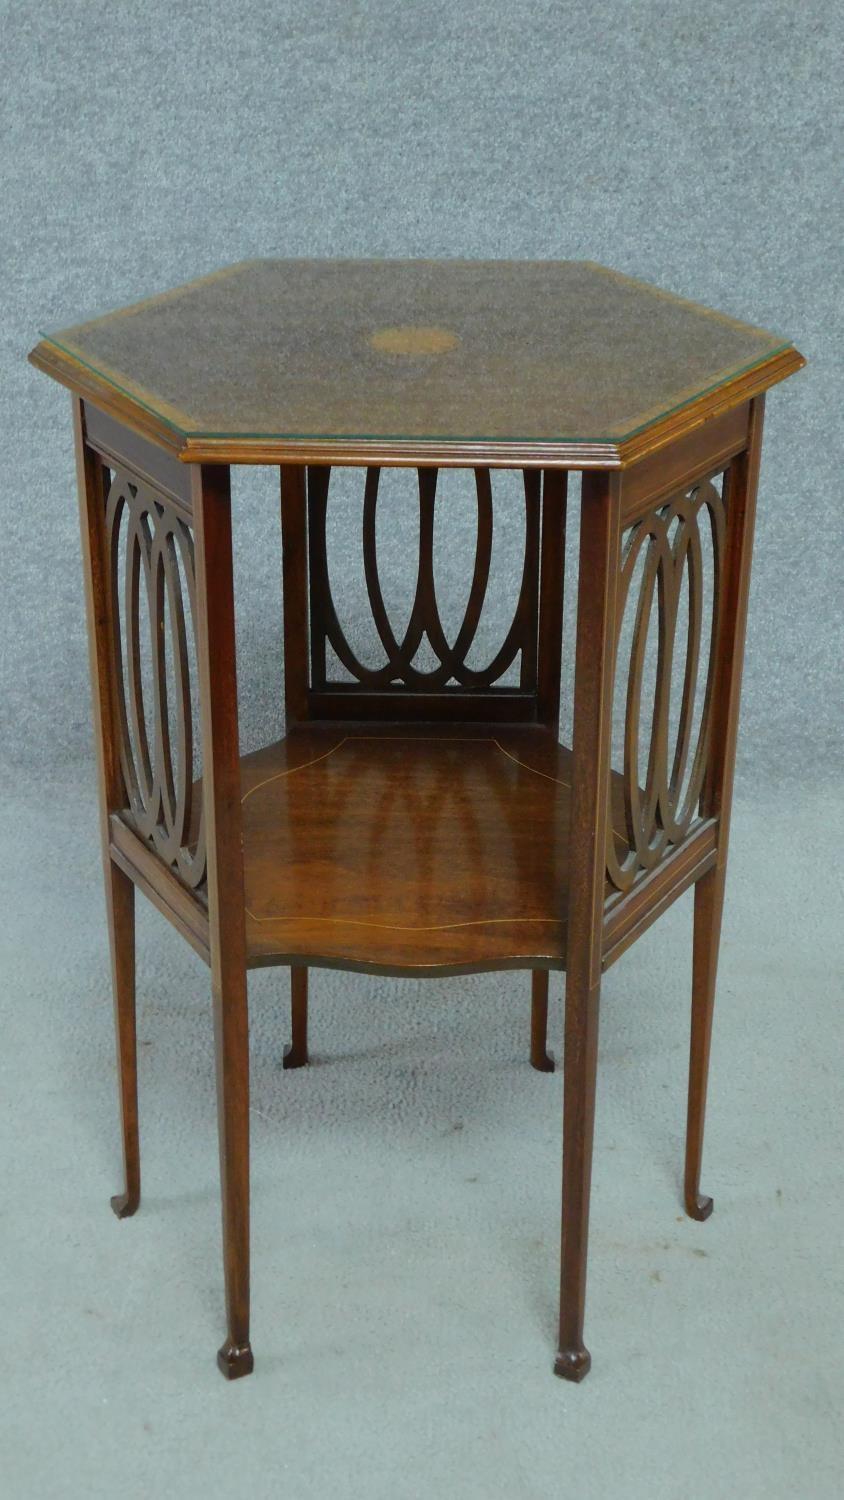 An Arts & Crafts mahogany and satinwood inlaid hexagonal carved lamp table raised on square tapering - Image 2 of 5